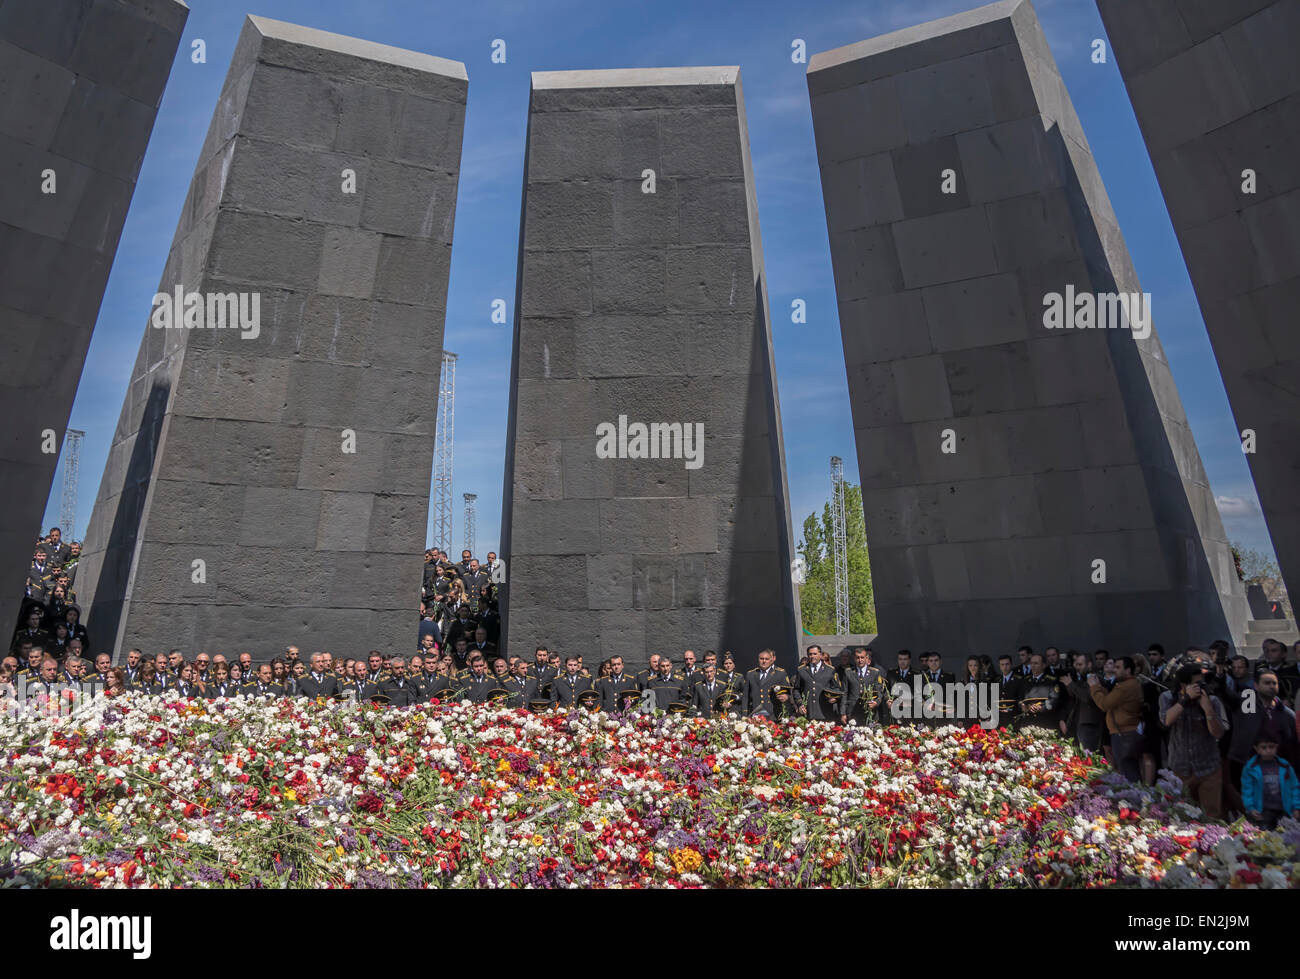 Yerevan, Armenia. 25th Apr, 2015. Armenian military at commemoration at 100th anniversary of the Armenian genocide - Stock Image